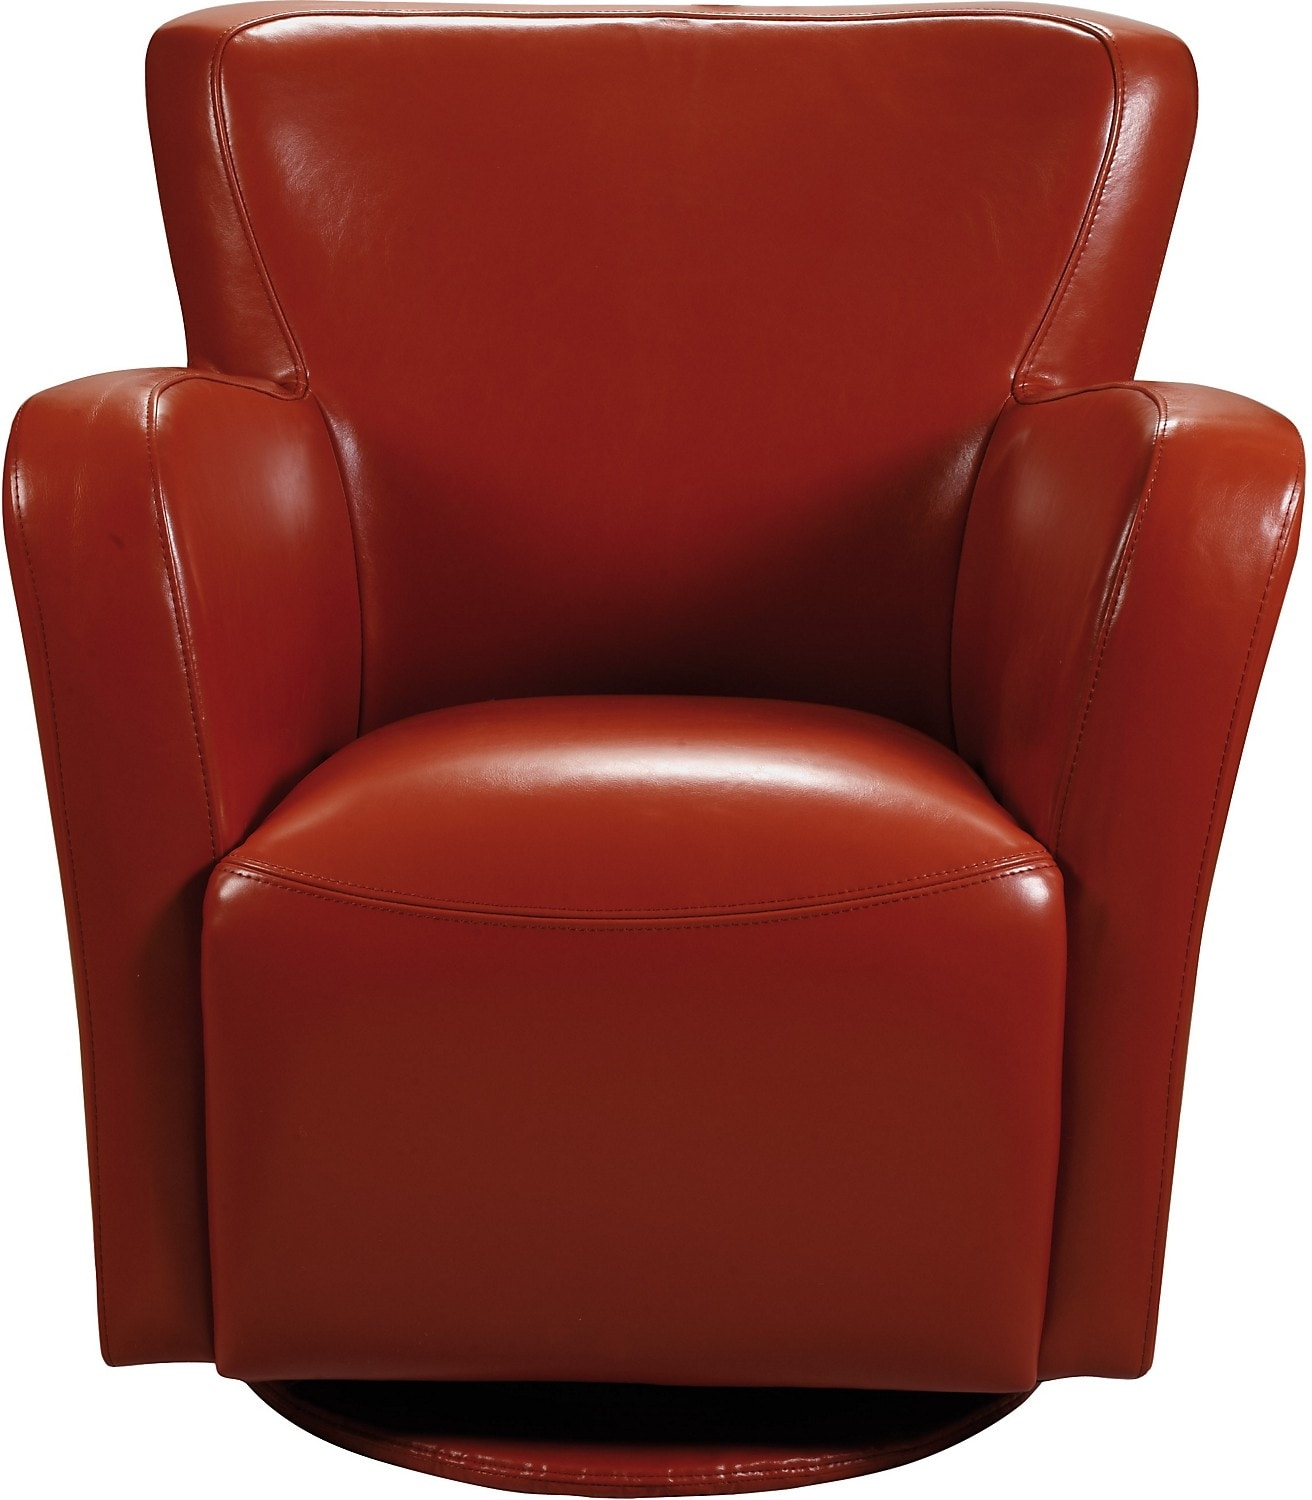 Bonded Leather Swivel Chair Spice The Brick